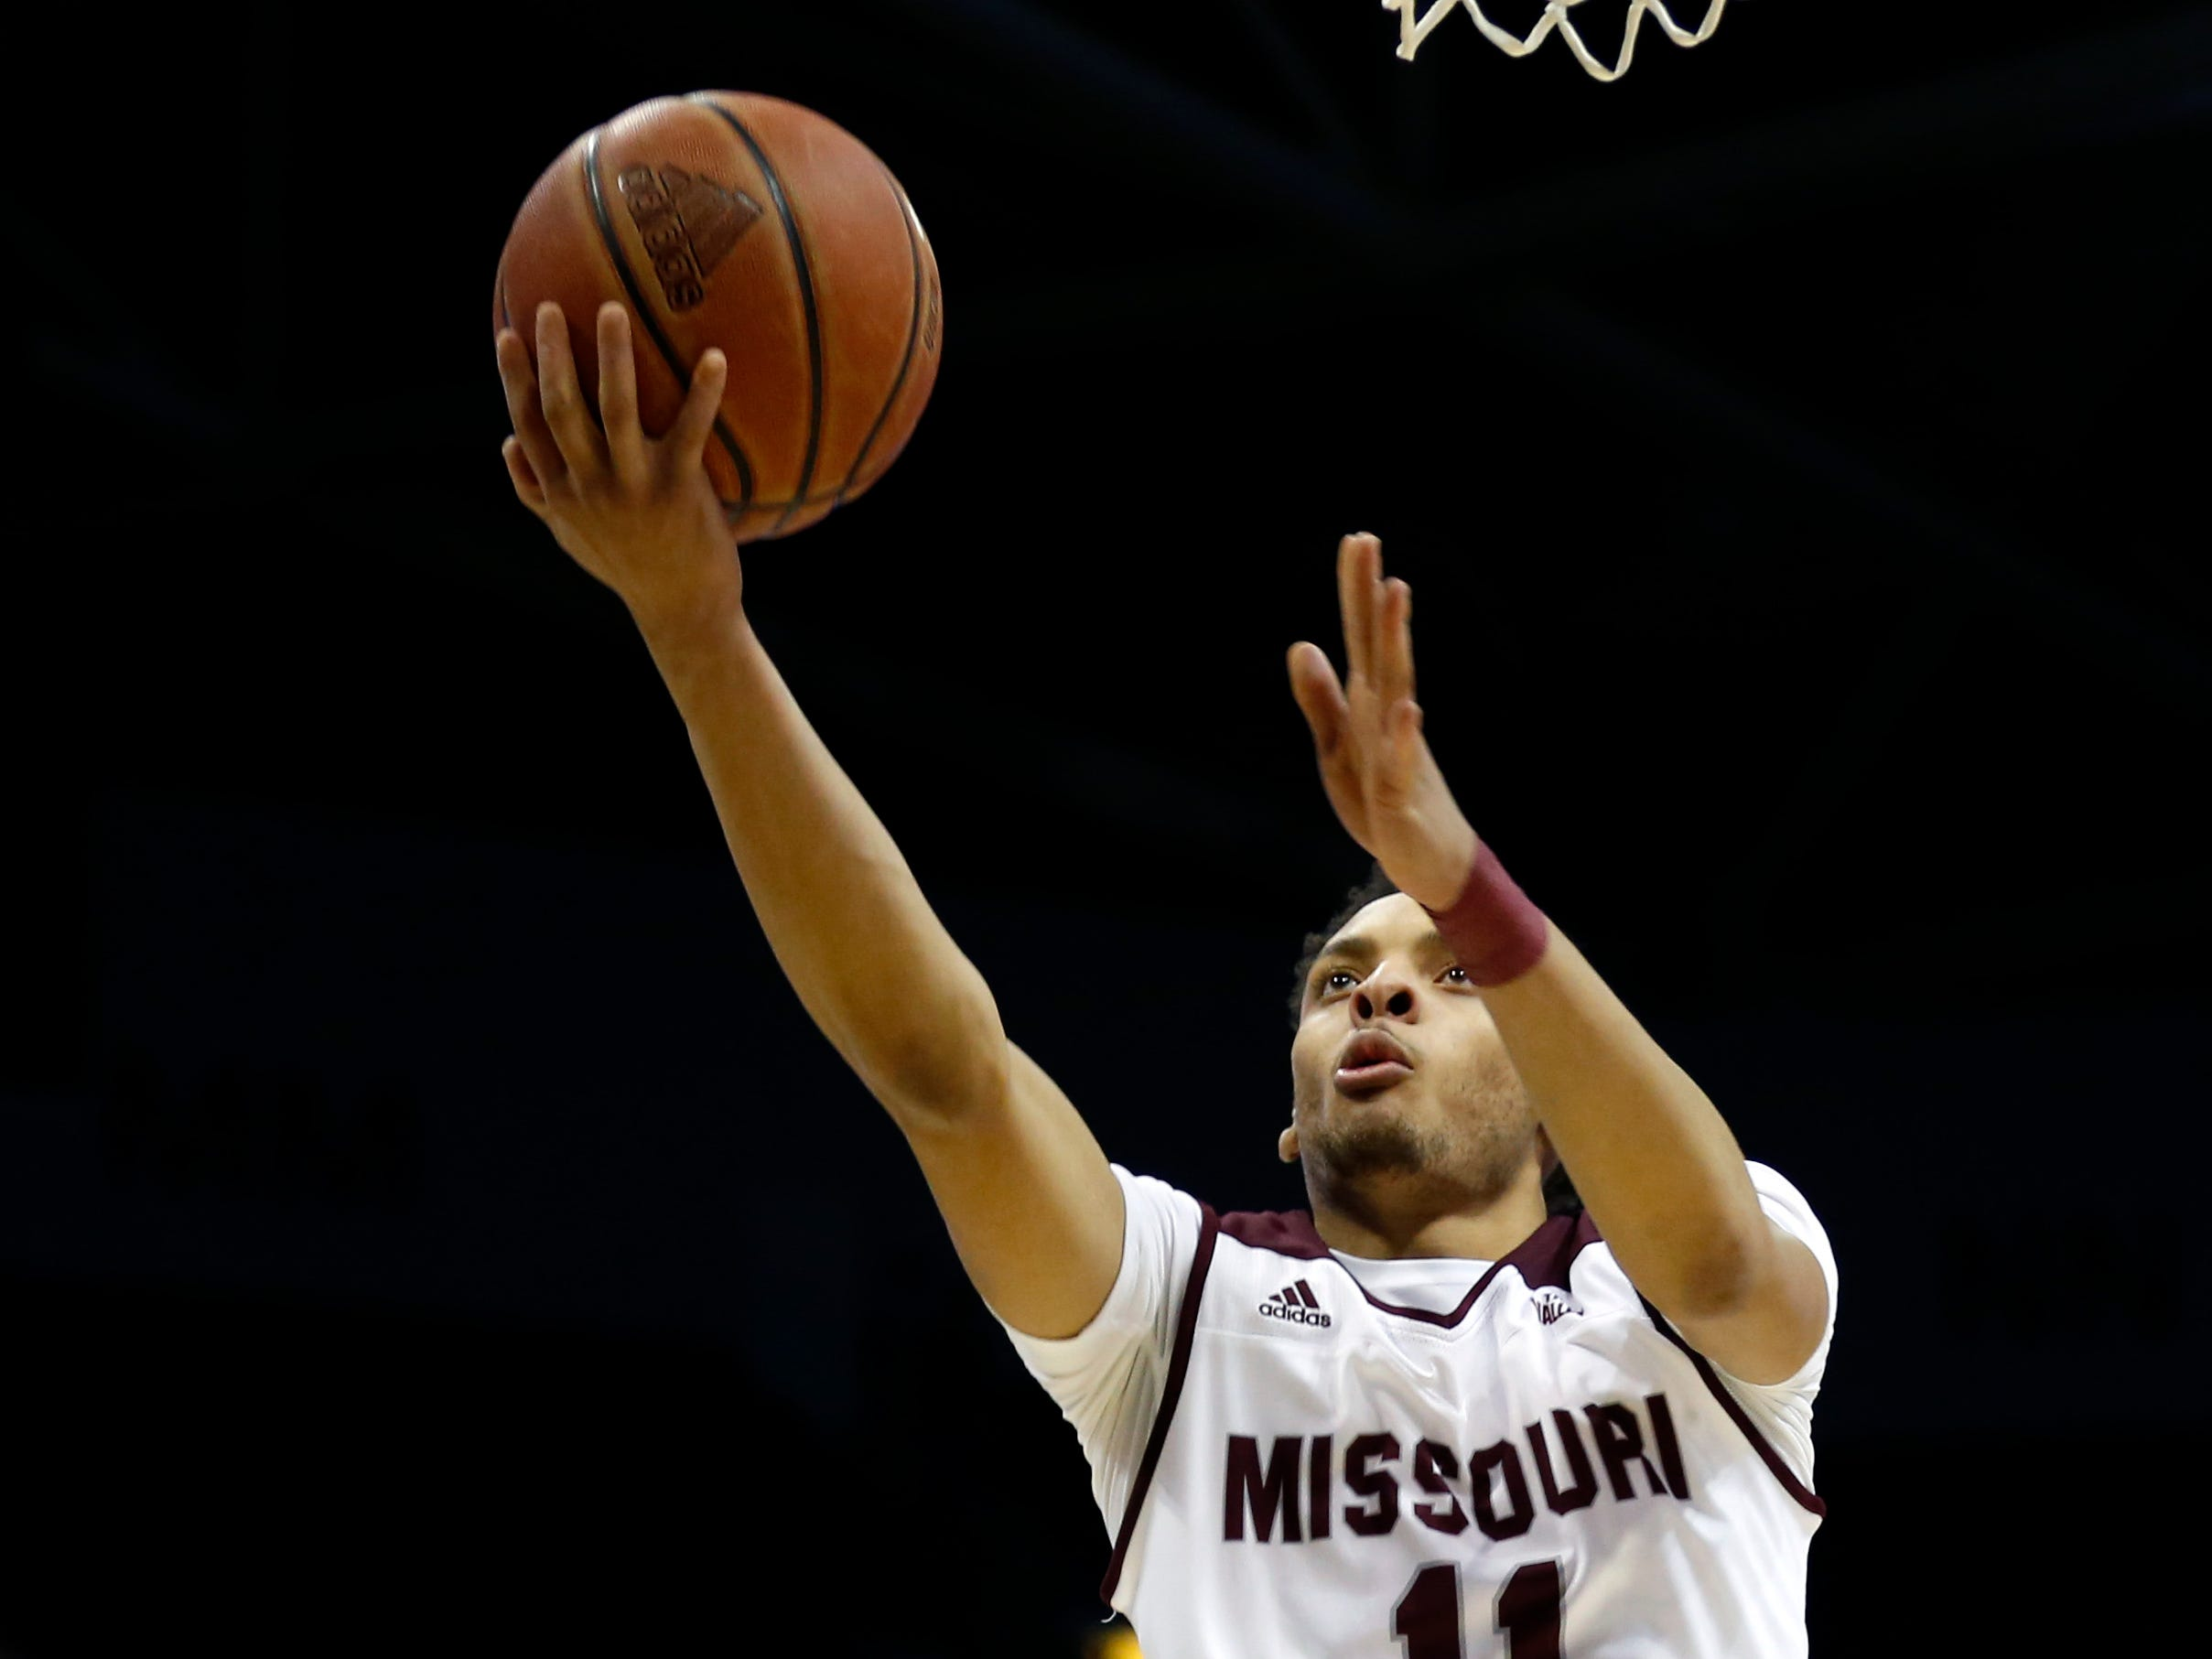 Missouri State's Jarred Dixon goes up for a field goal on the Southern Illinois Salukis at JQH Arena on Wednesday, Feb. 6, 2019.